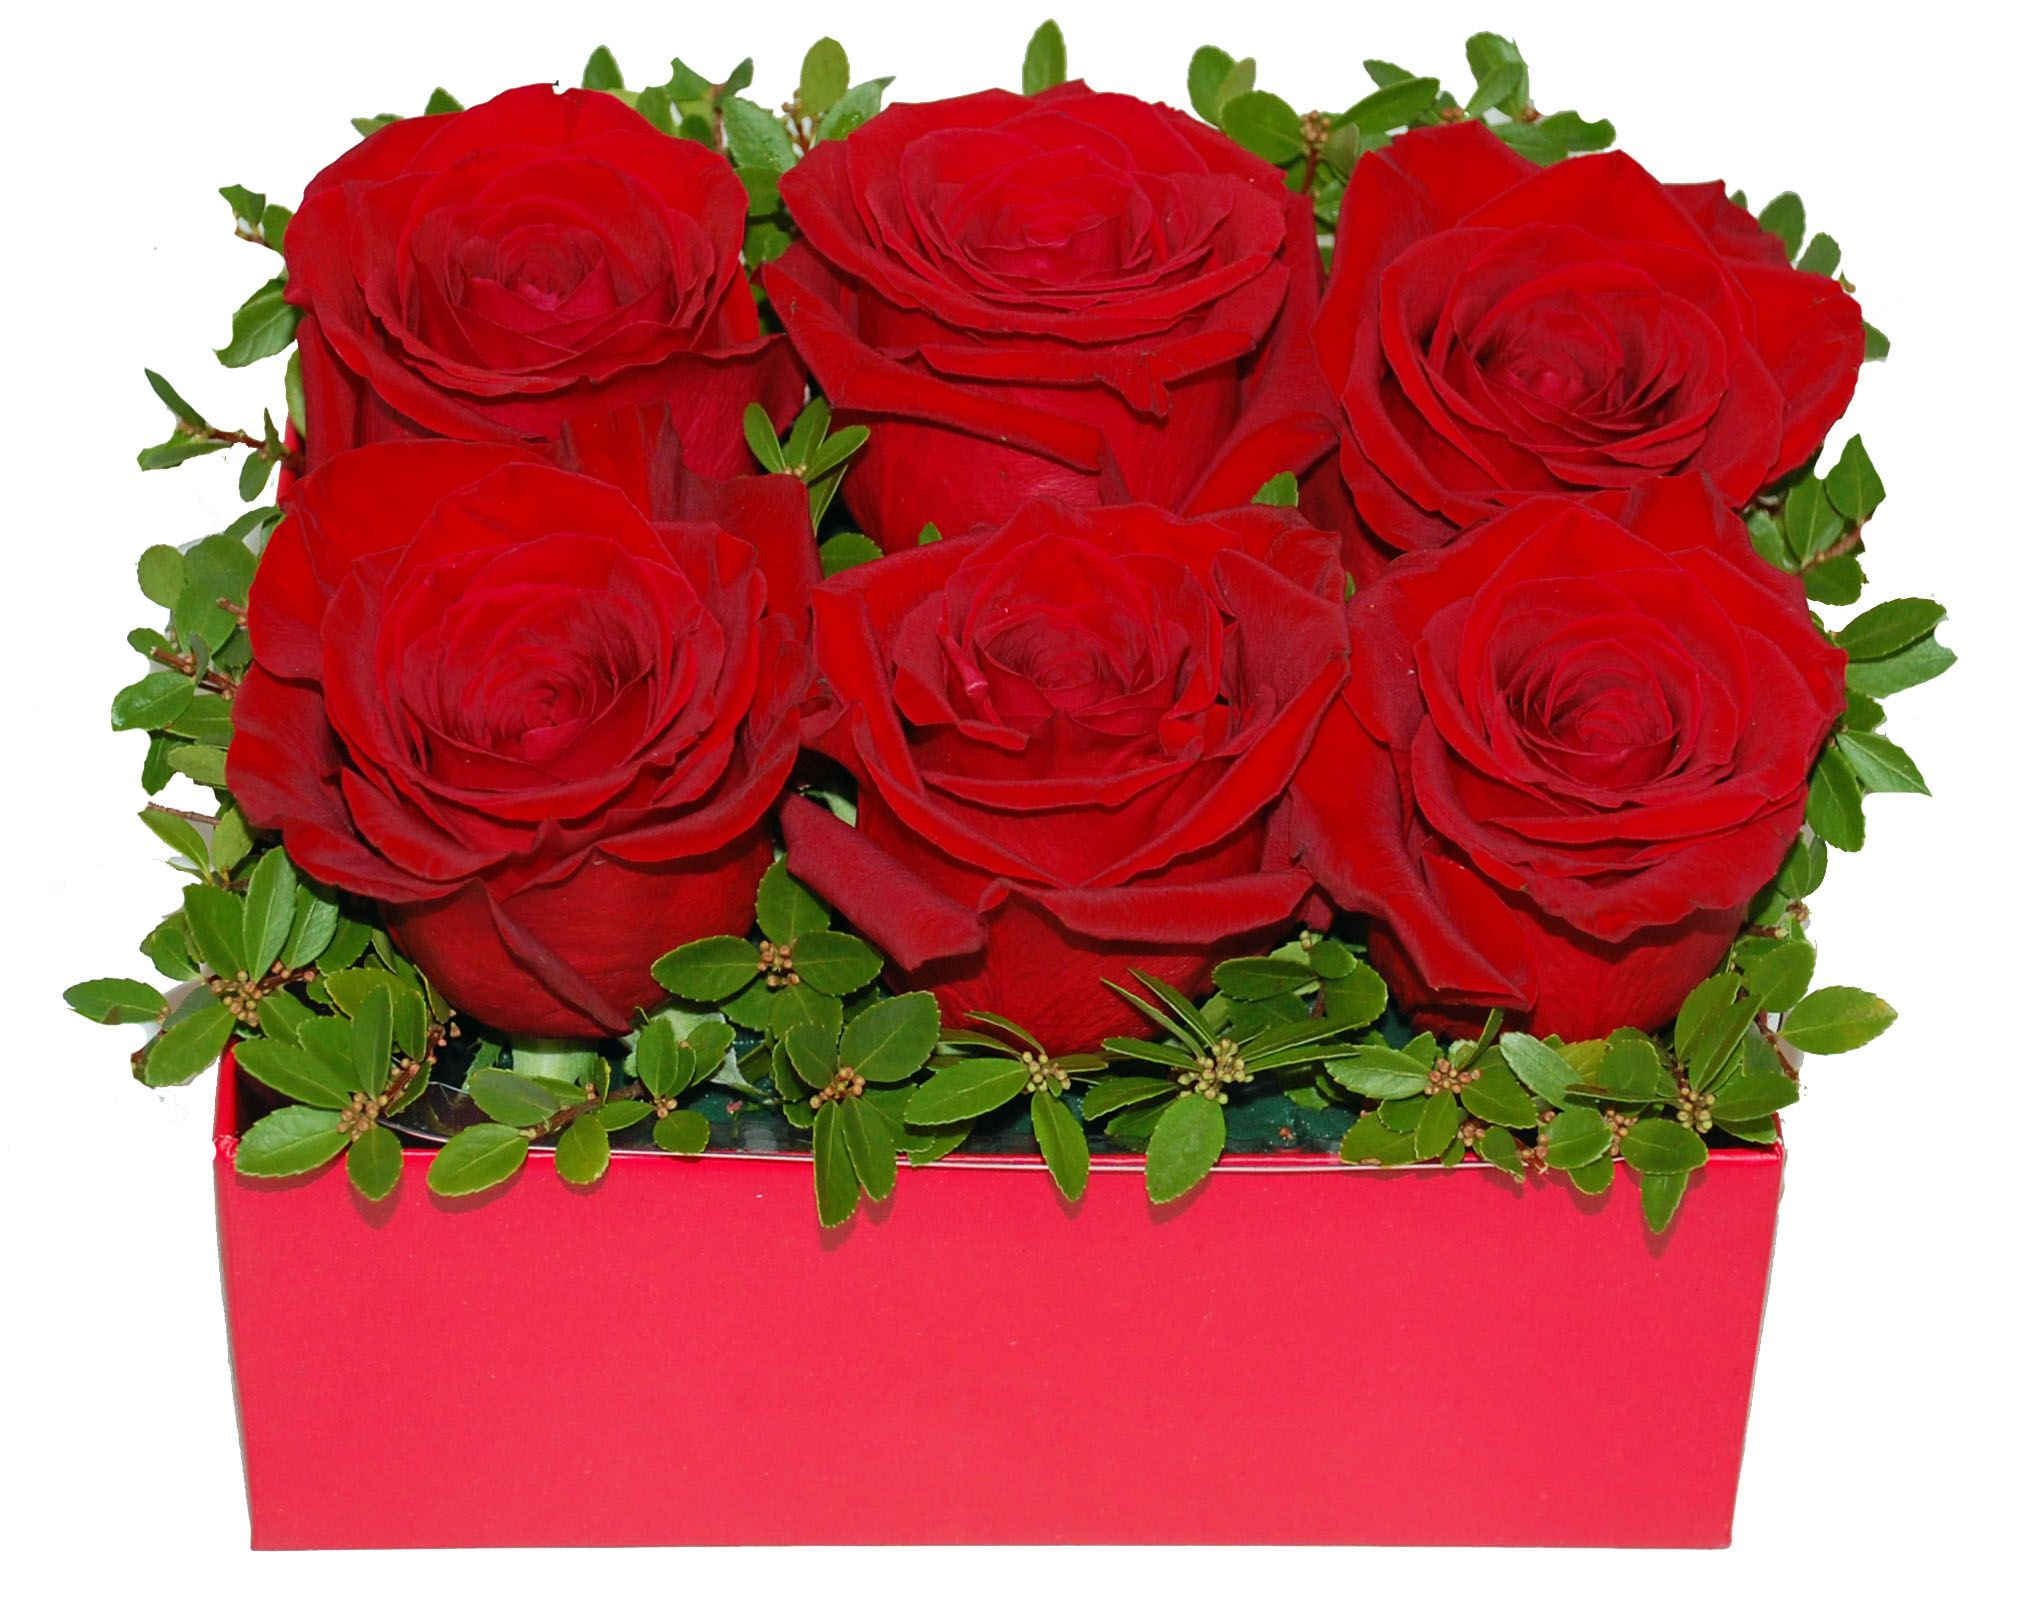 Red Roses Arranged In A Gift Box For The Modern Valentine Available Year Round In Different Colour Choices At Toronto F Fast Flowers Flower Delivery Red Roses